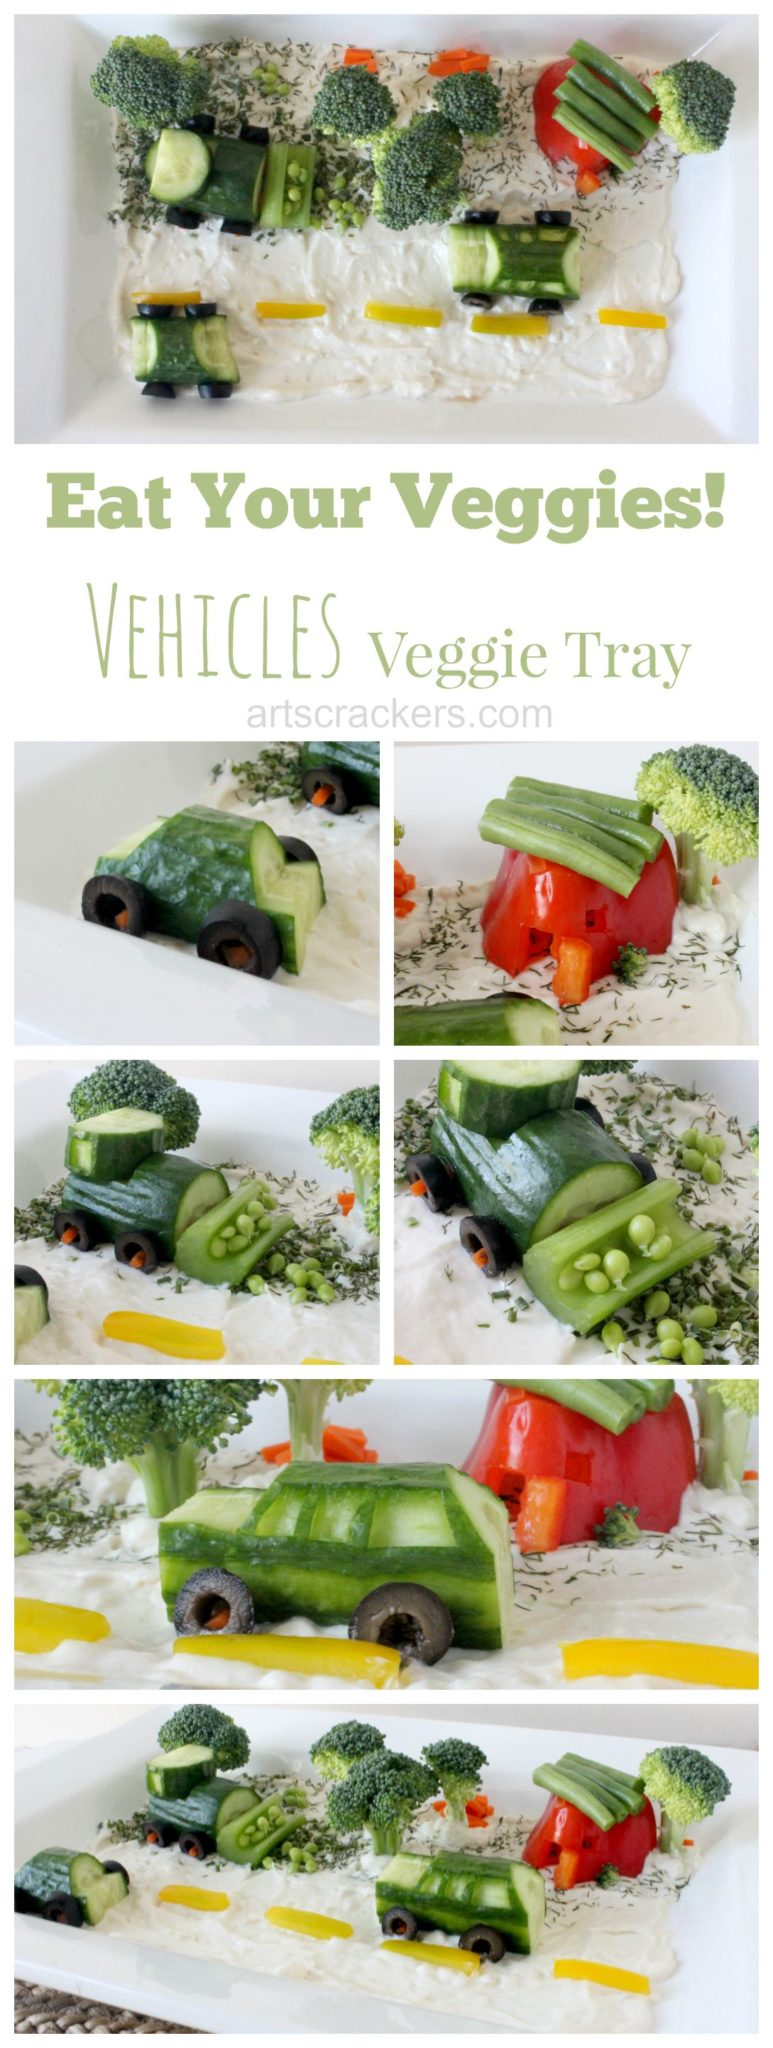 Eat Your Veggies Vehicles Vegetable Tray Tutorial